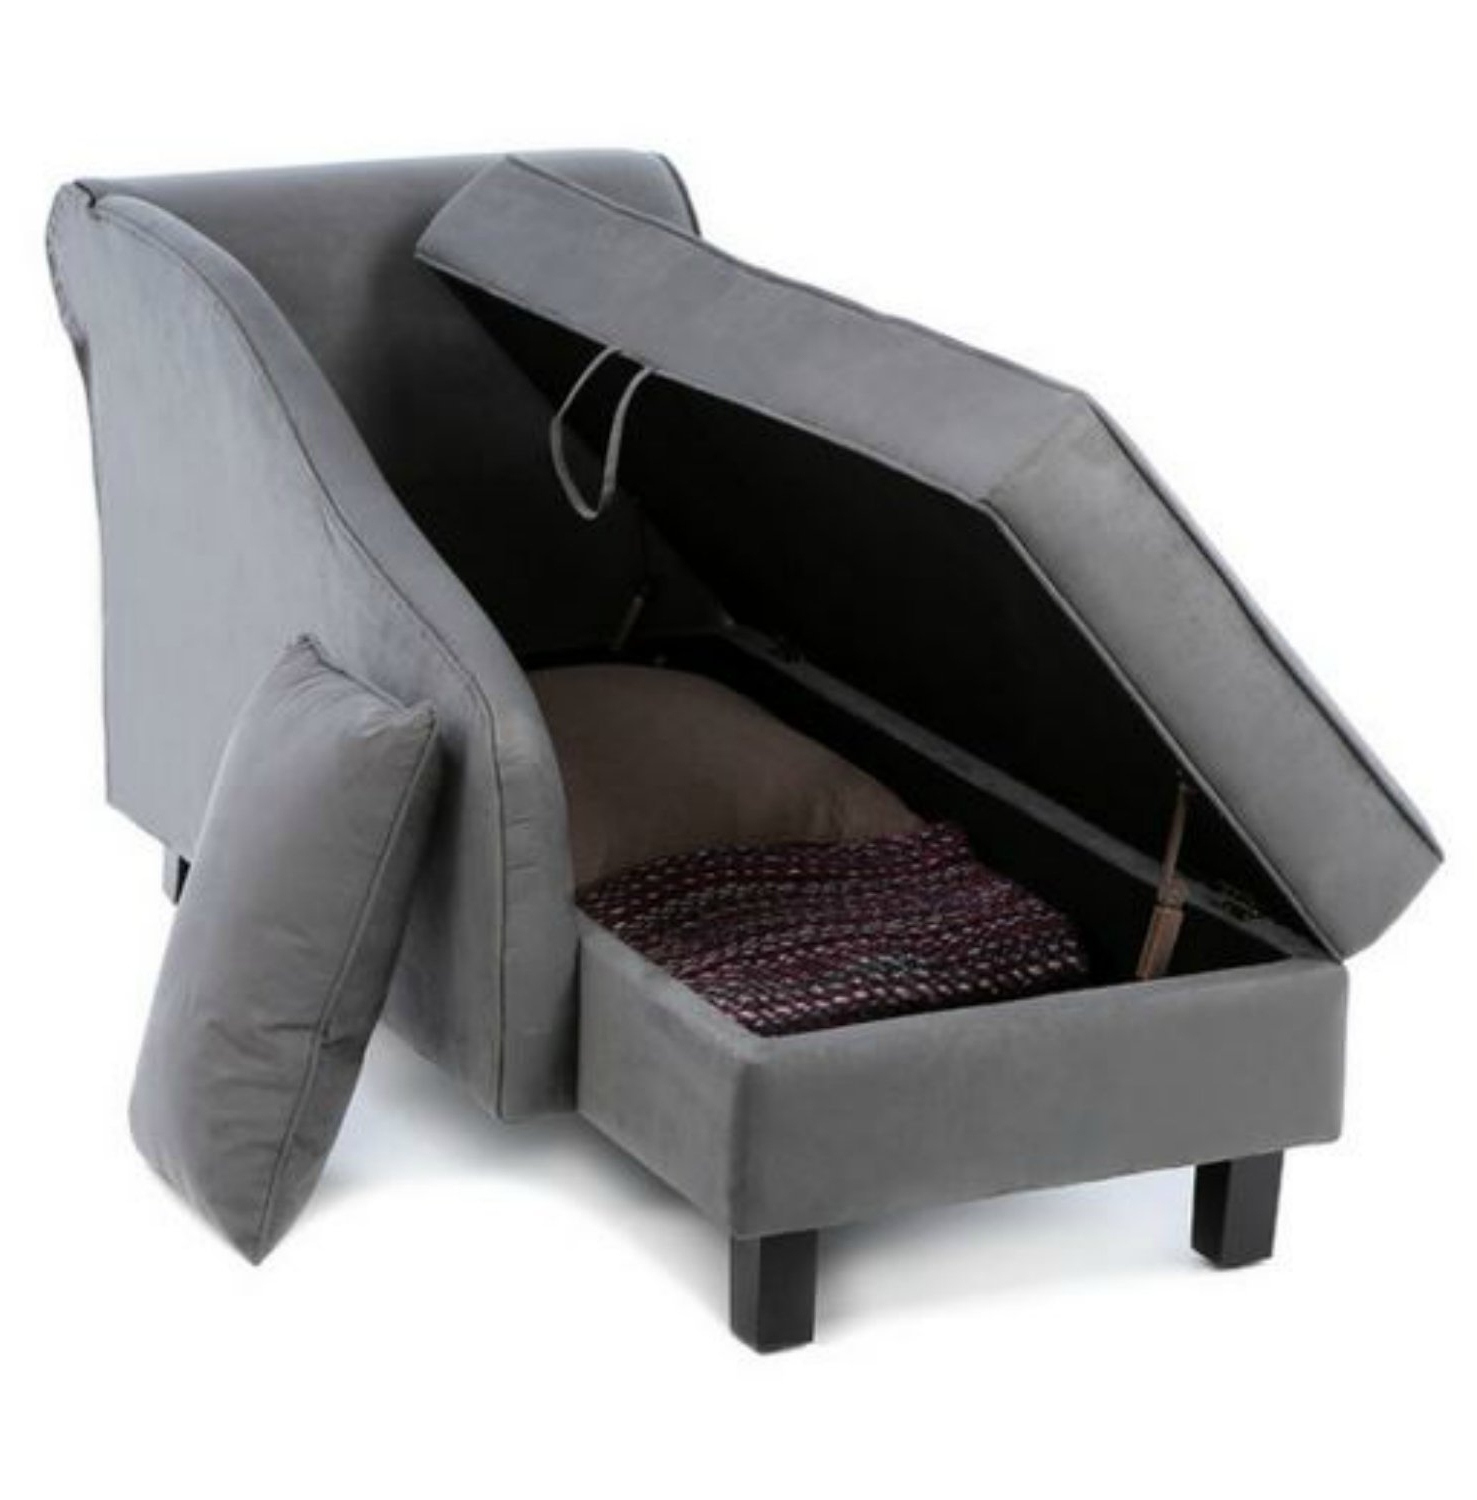 Well Known Grey Chaise Lounges Intended For Lounge Chair : Grey Chaise Lounge Chair Chez Long Chair' Leather (View 15 of 15)